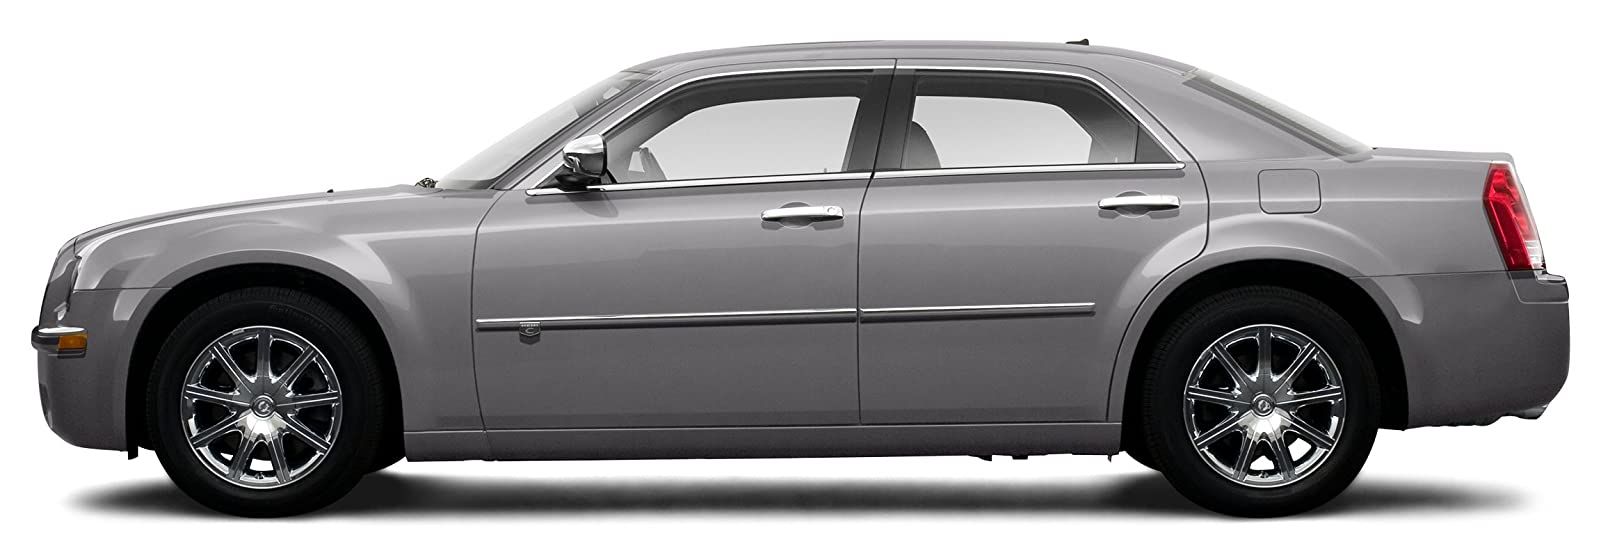 2008 Chrysler 300 Reviews Images And Specs Vehicles 2005 Owners Manual Product Image